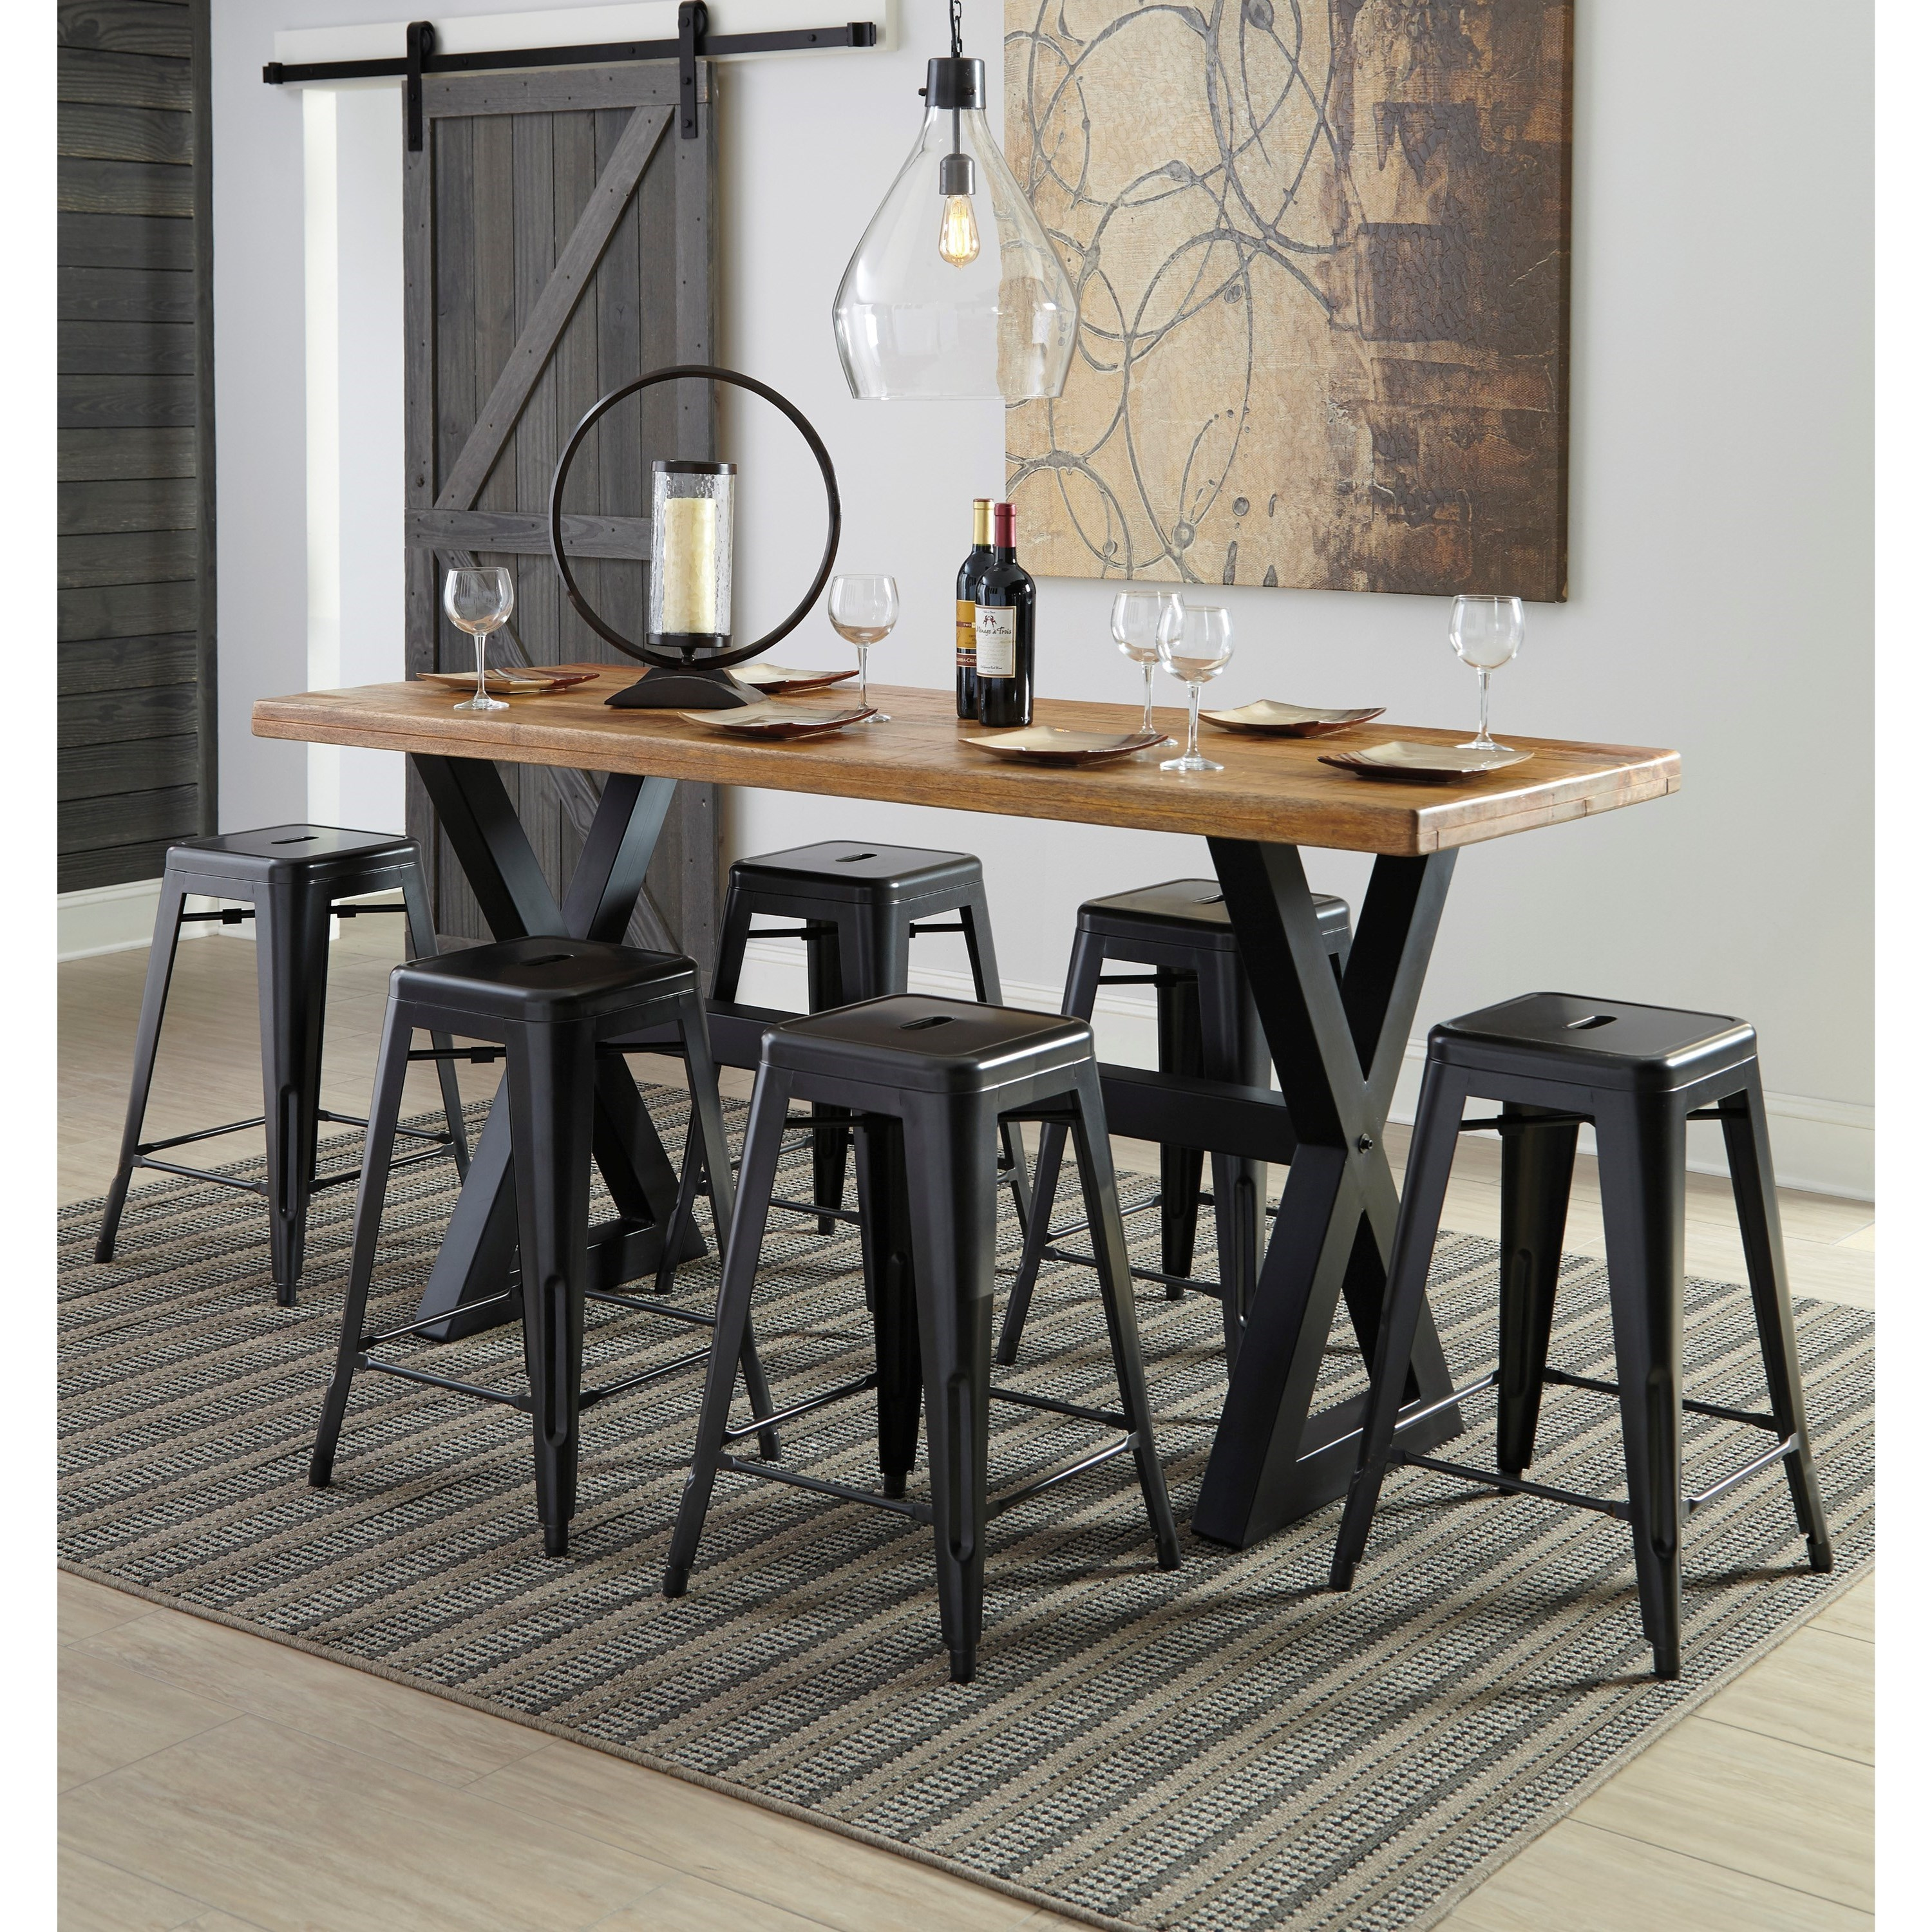 Signature Design by Ashley Glosco 7-Piece Rectangular Counter Table Set - Item Number: D548-13+6xD542-024